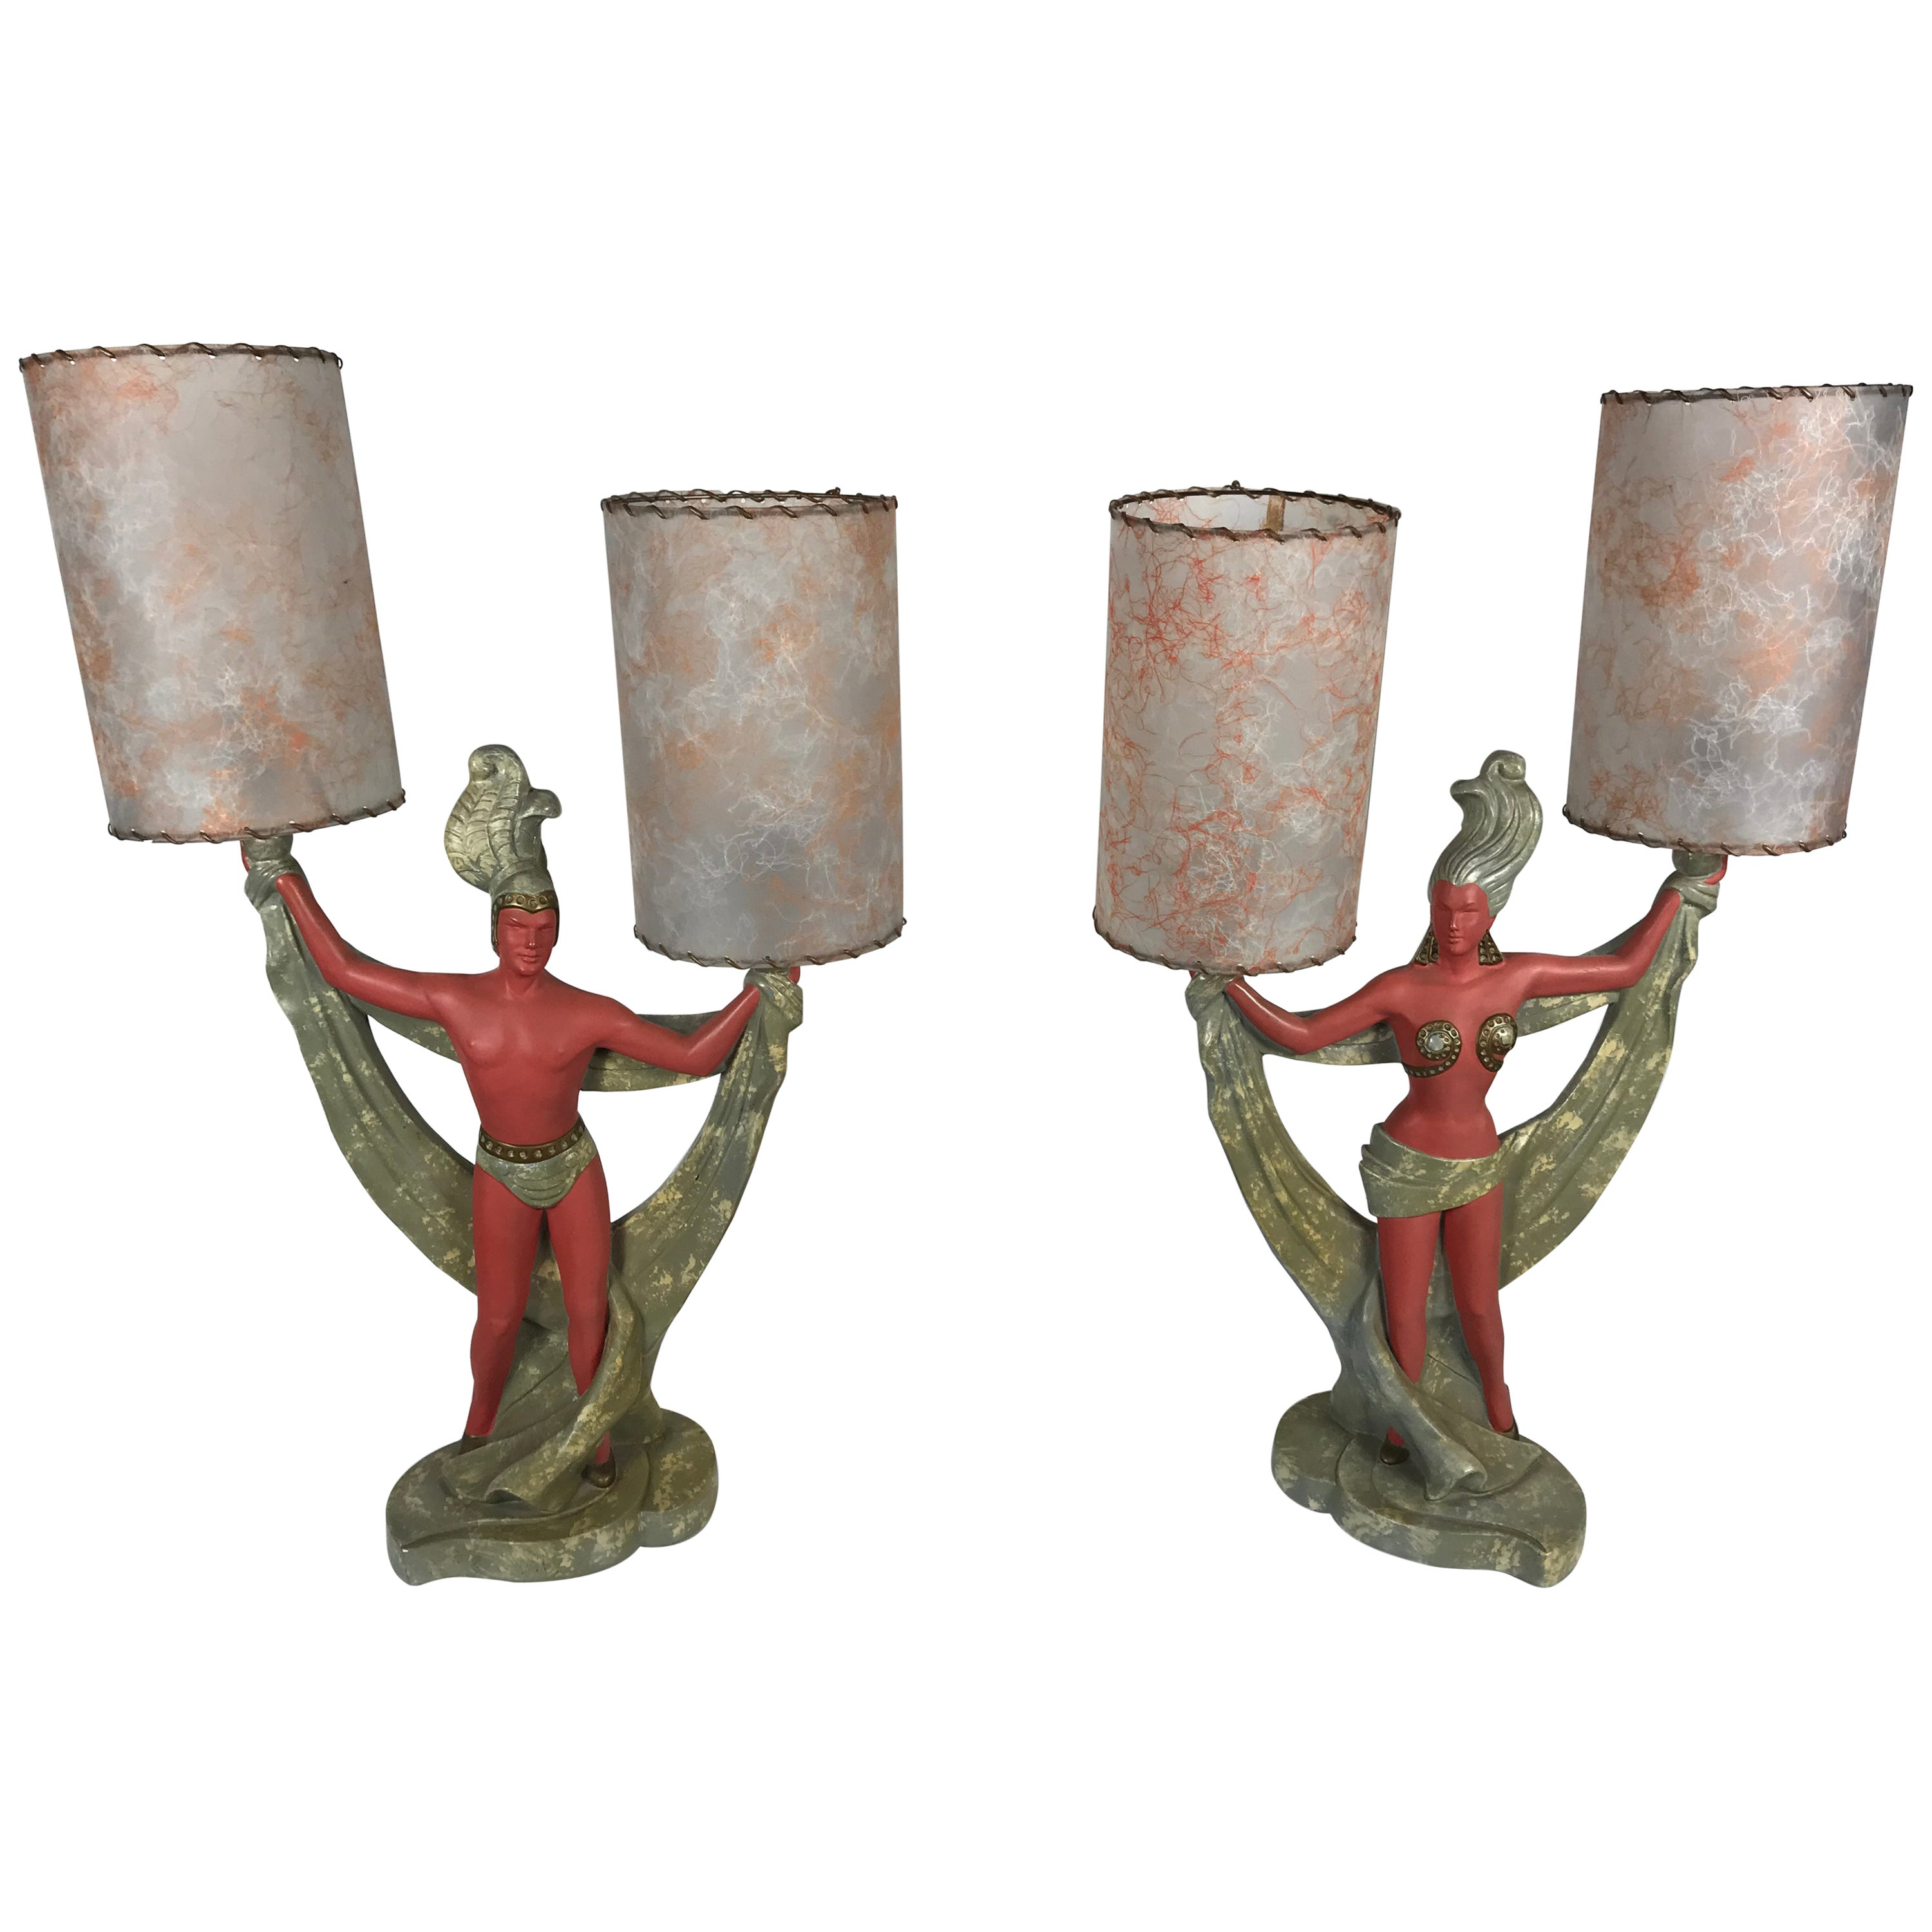 Classic Mid-Century Modern Plaster Figural Lamps, Continental Art Co., 1950s